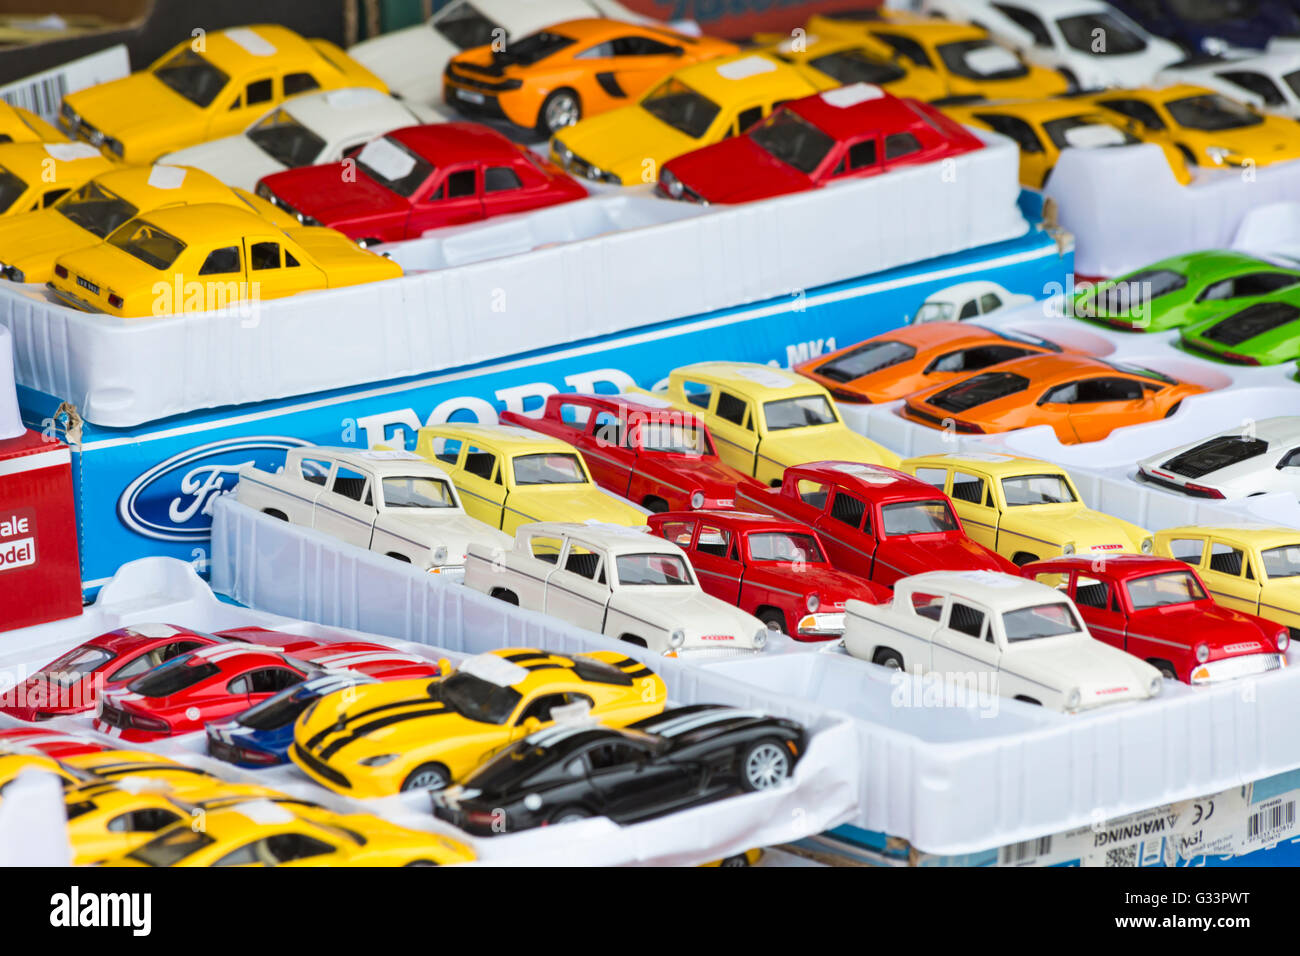 Toy Cars For Sale Stock Photos & Toy Cars For Sale Stock Images - Alamy